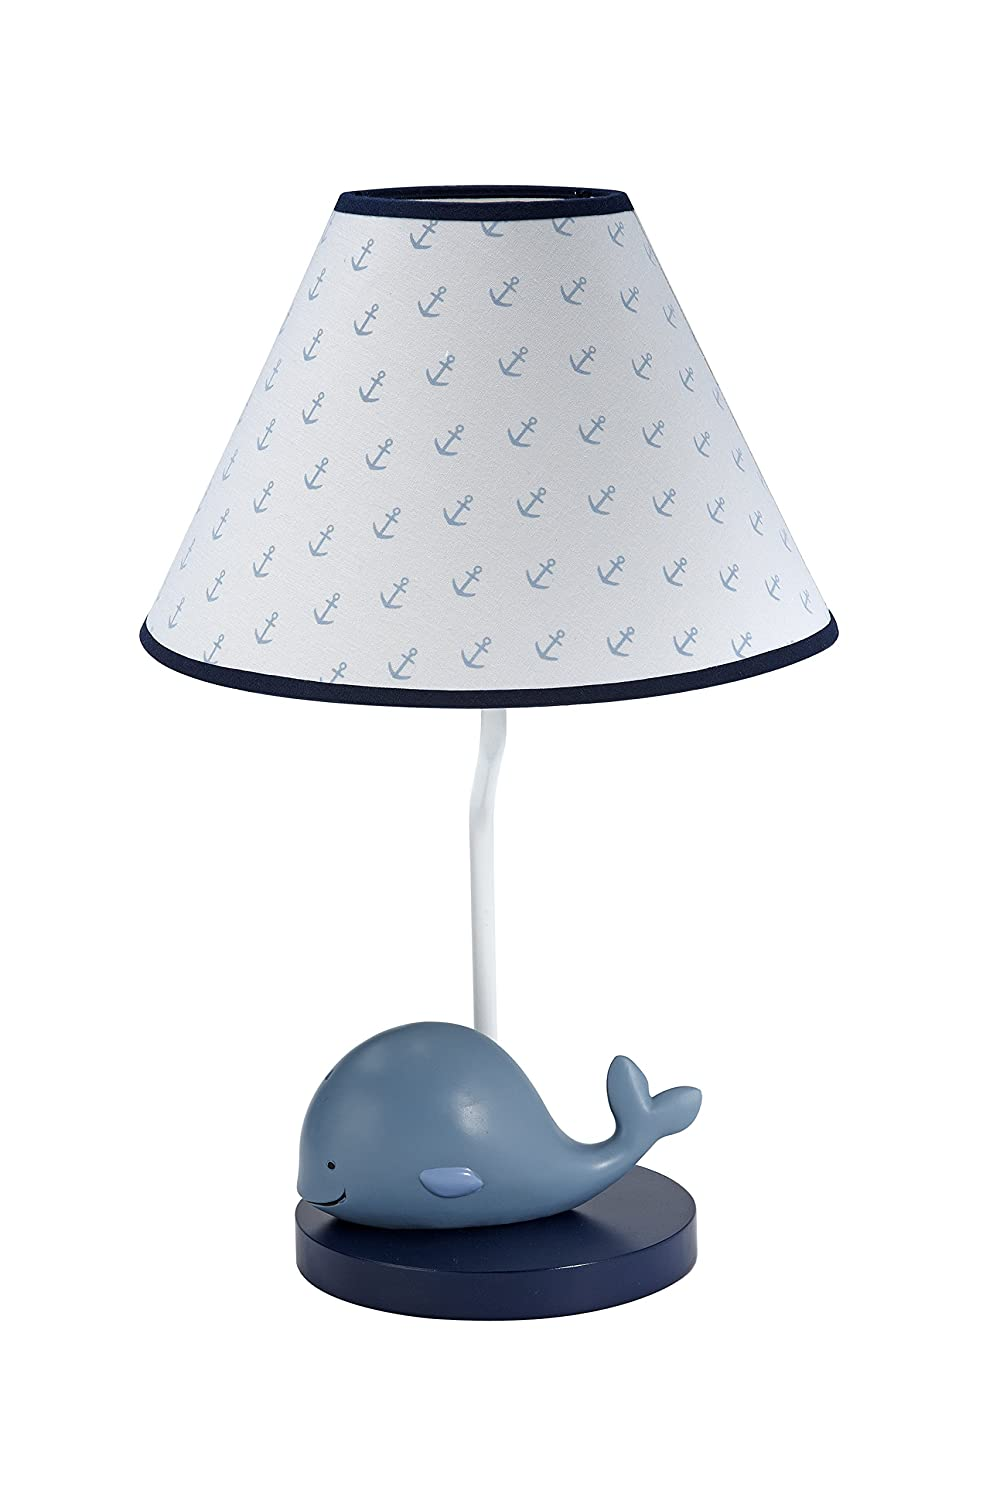 Nautica Kids Brody Nautical/Whale Lamp Base and Shade, Blue/Light Blue/White